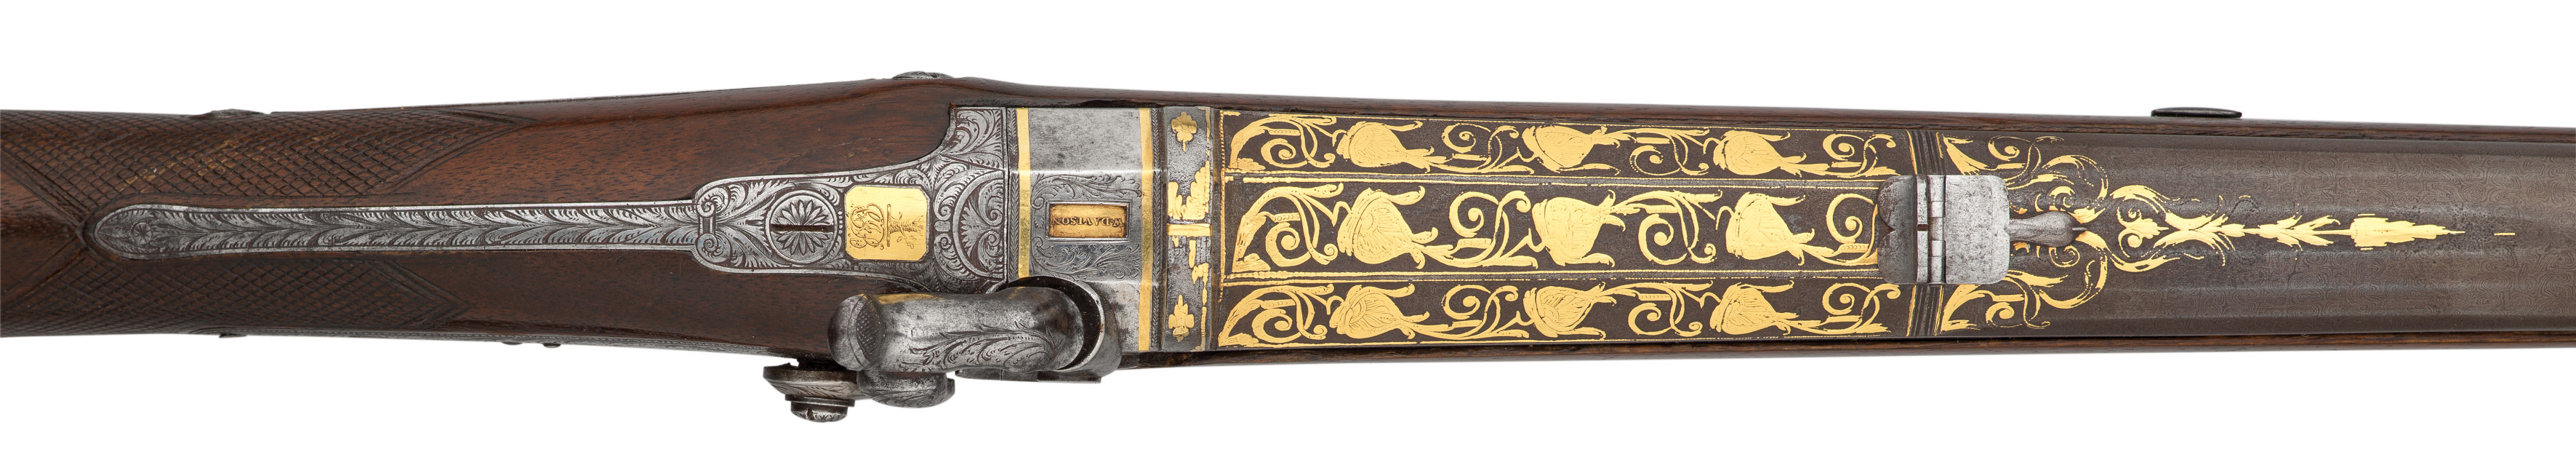 ‡Ⓦ A FINE .600 CALIBRE PERCUSSION SPORTING RIFLE MADE FOR CHARLES JOHN BRANDLING WITH FINE 18TH - Image 3 of 4